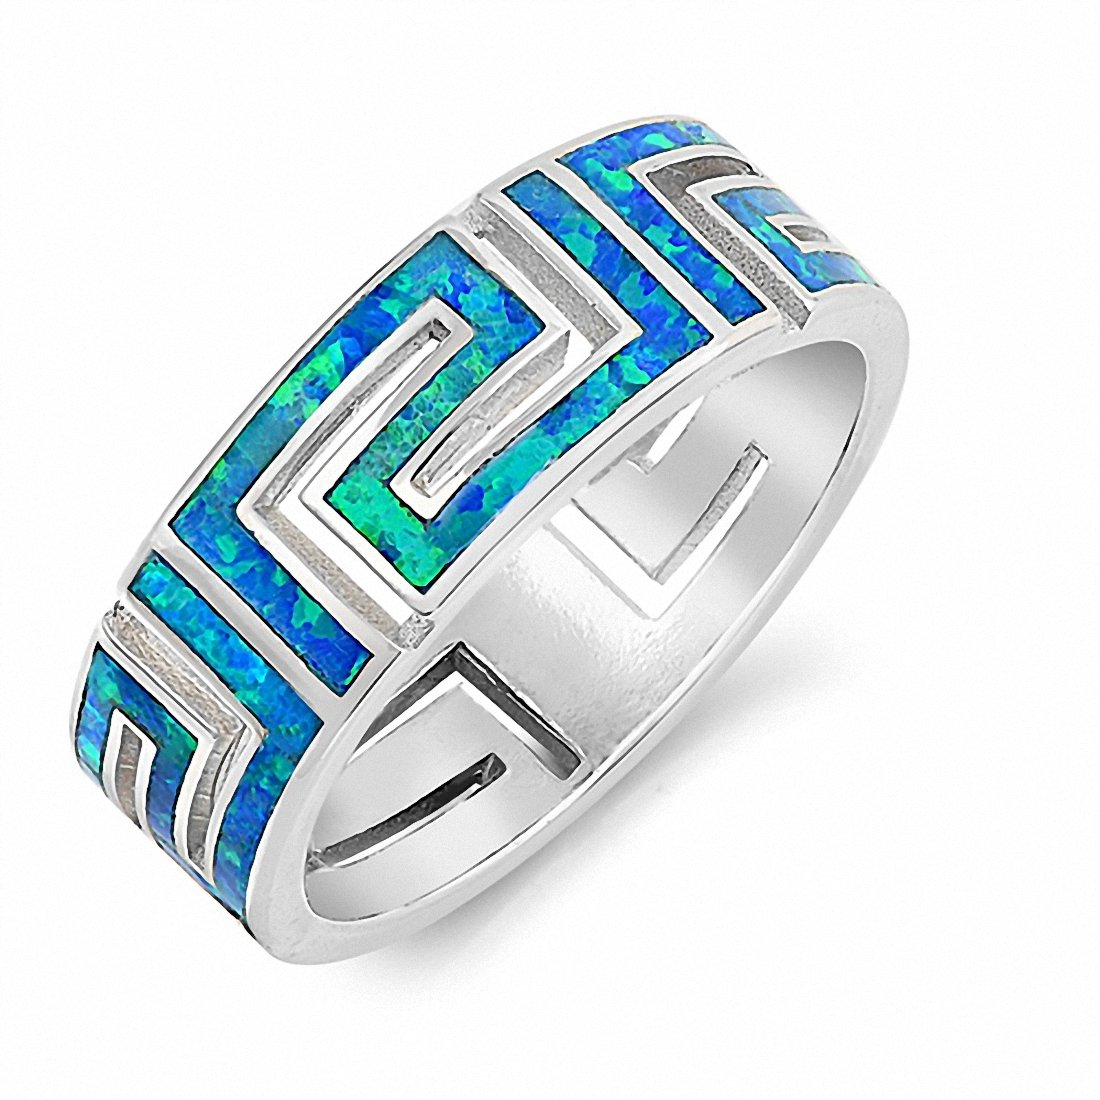 7mm Greek Key Band Ring 925 Sterling Silver Created Opal Choose Color